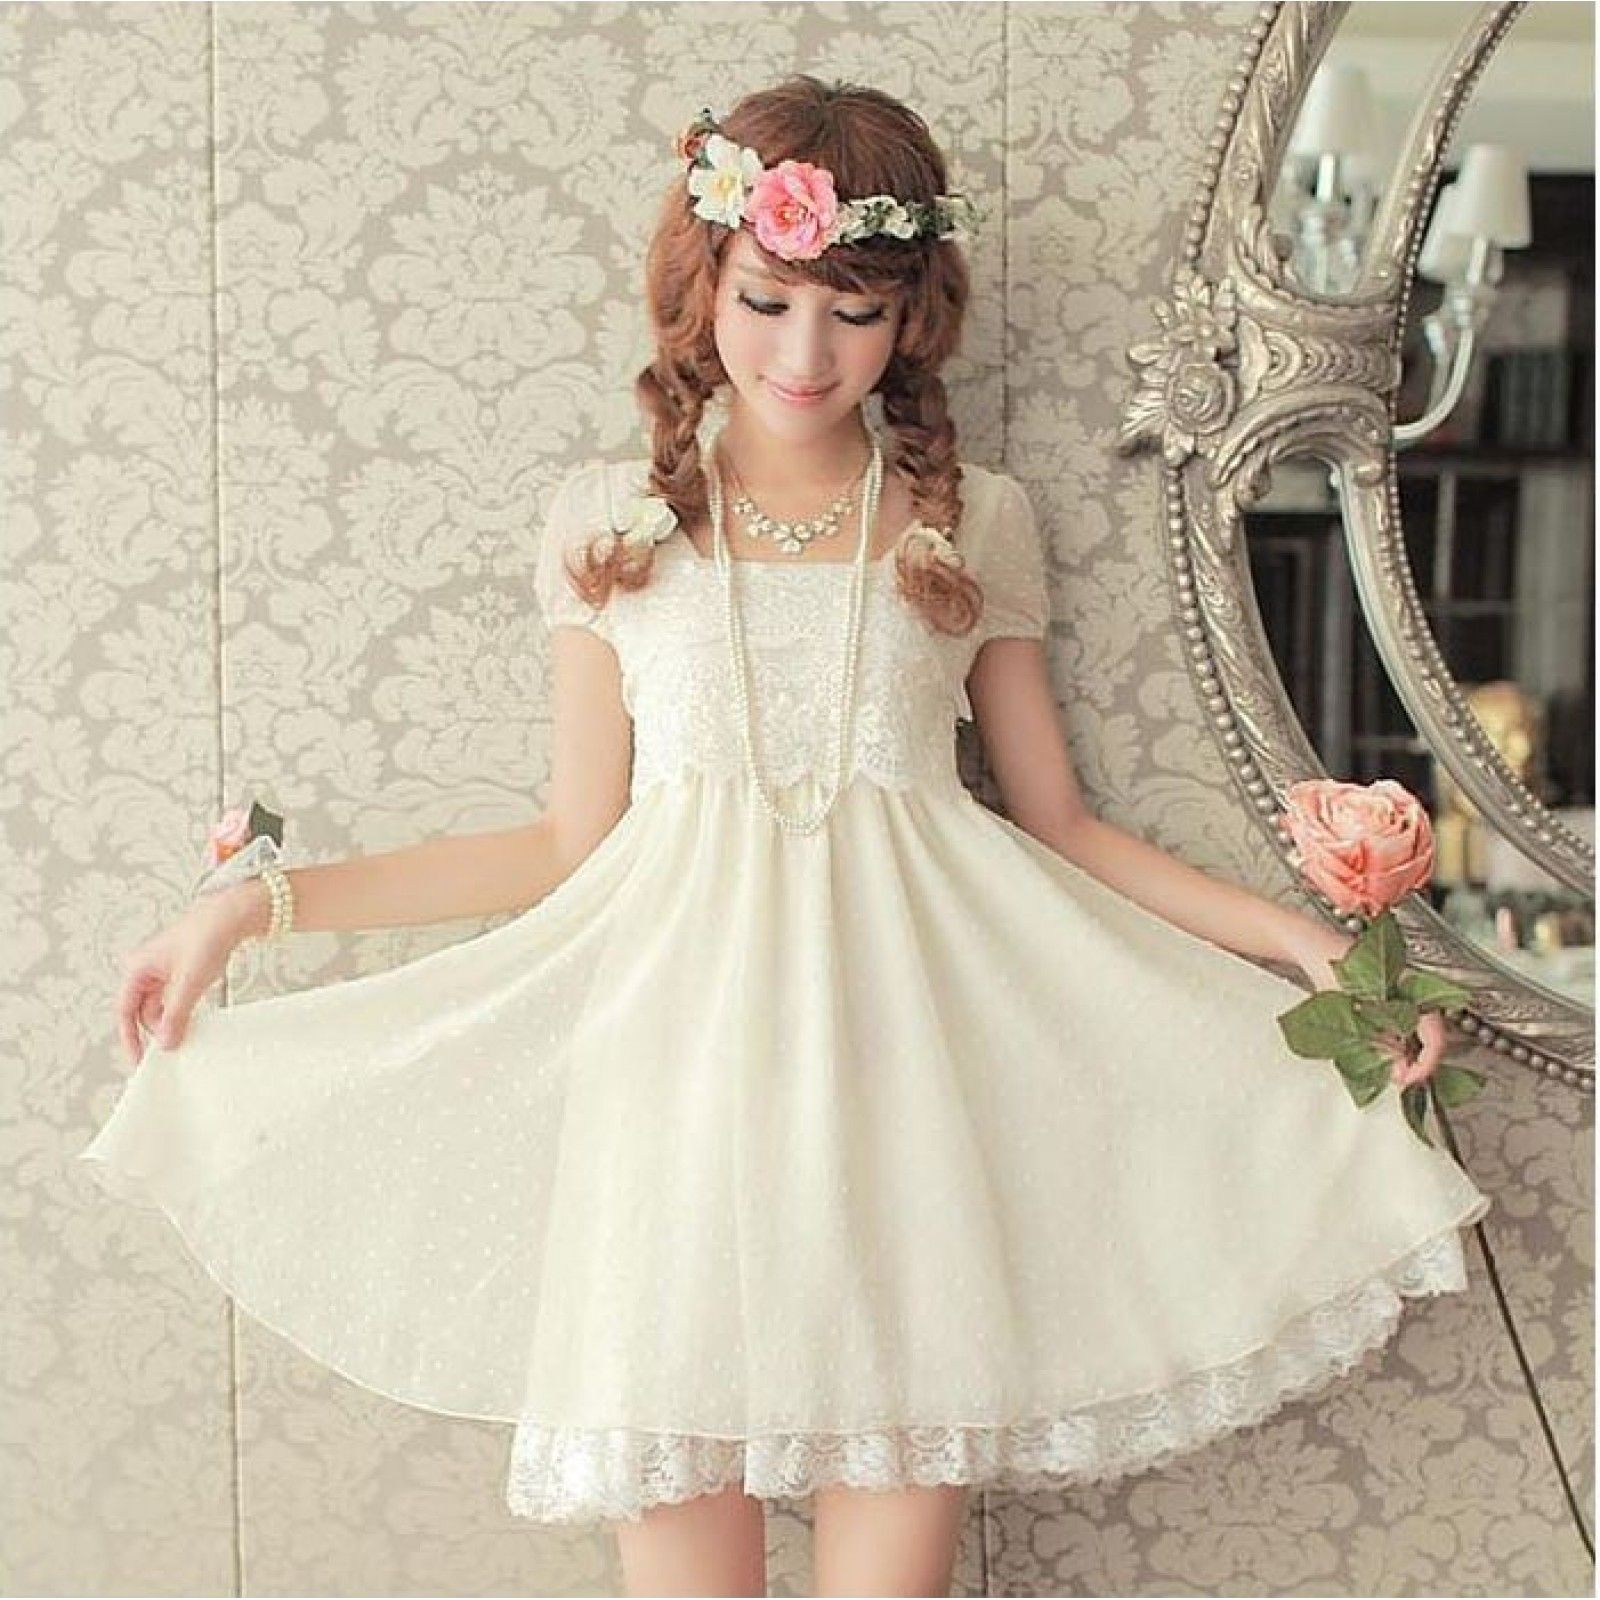 White Girl Fashion: Cute White Dress With Lace, Sweet Looking, Japanese